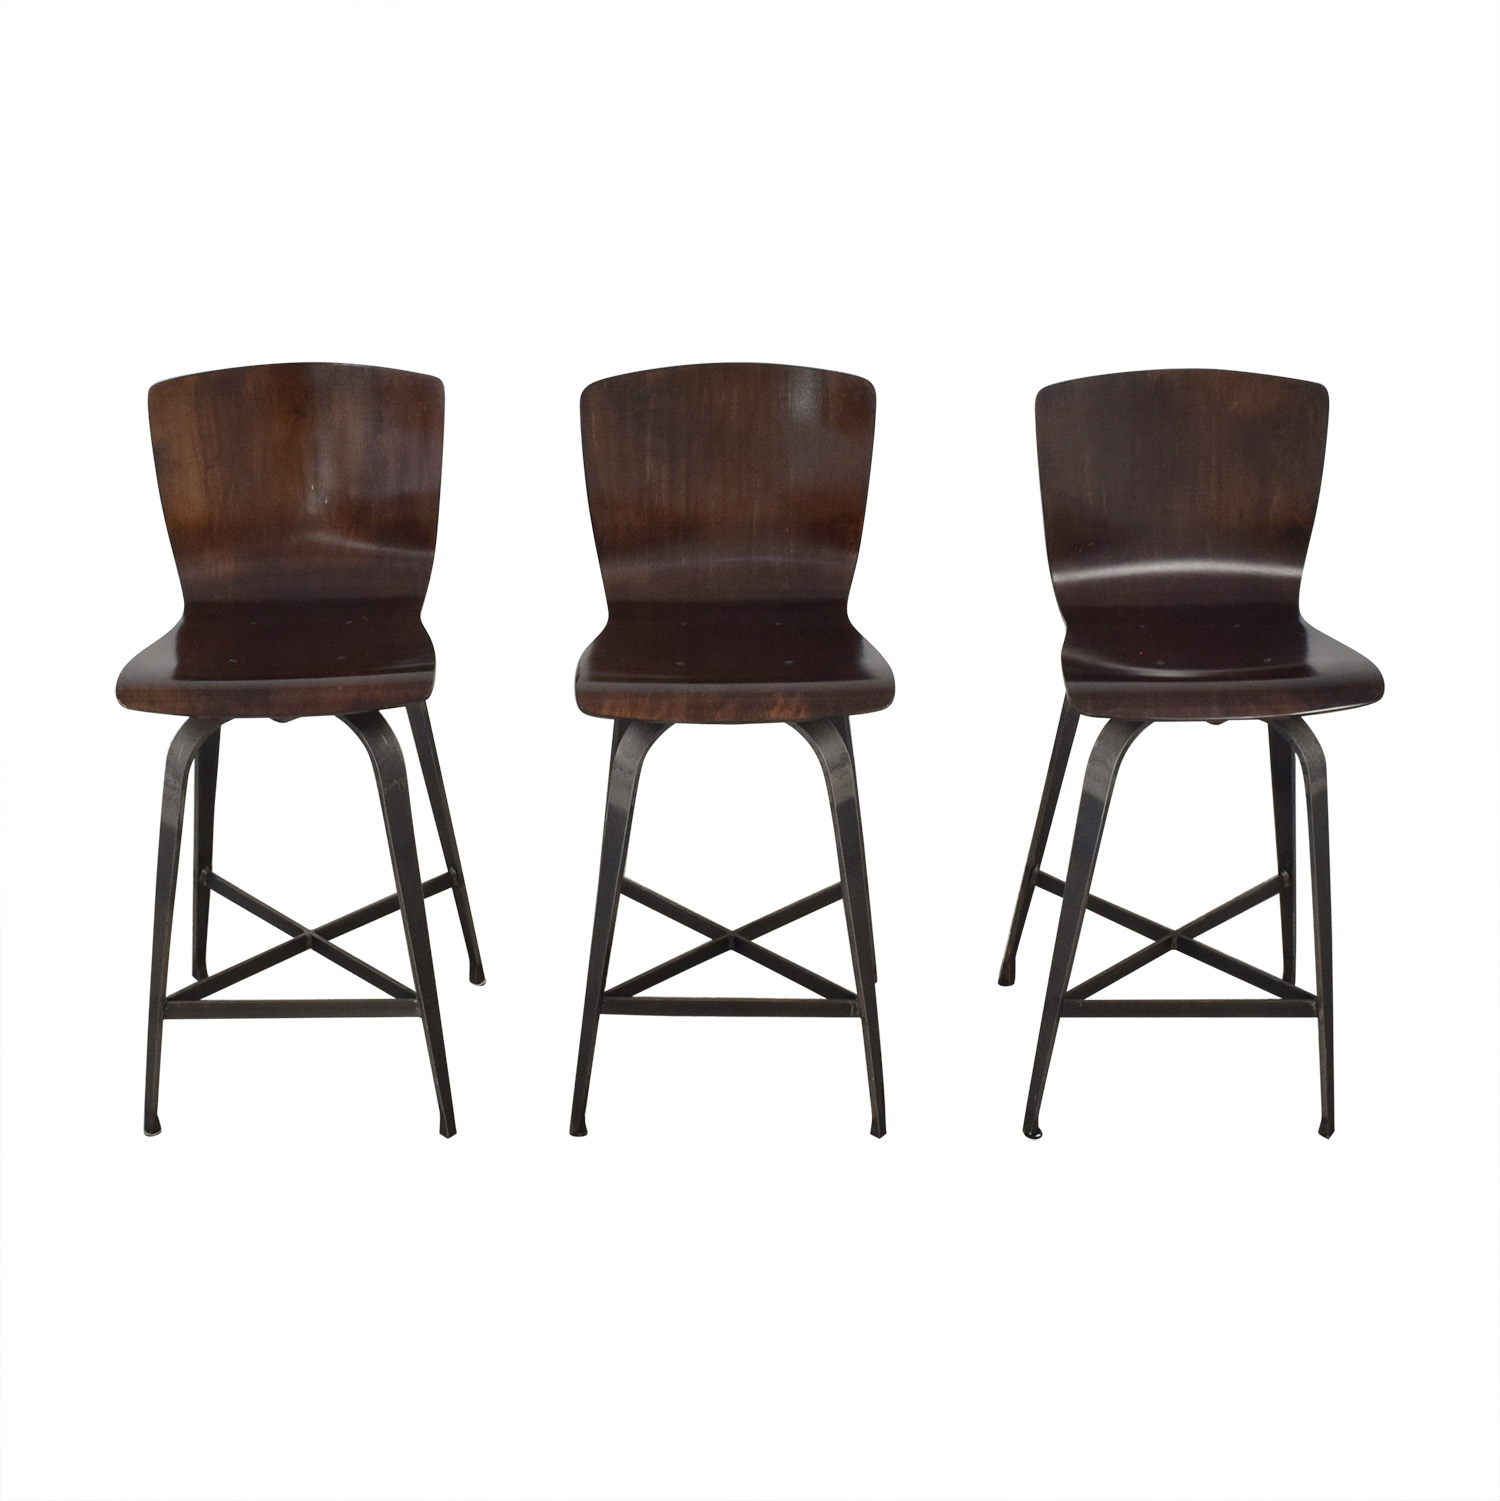 Charleston Forge Fresno Swivel Counterstools sale